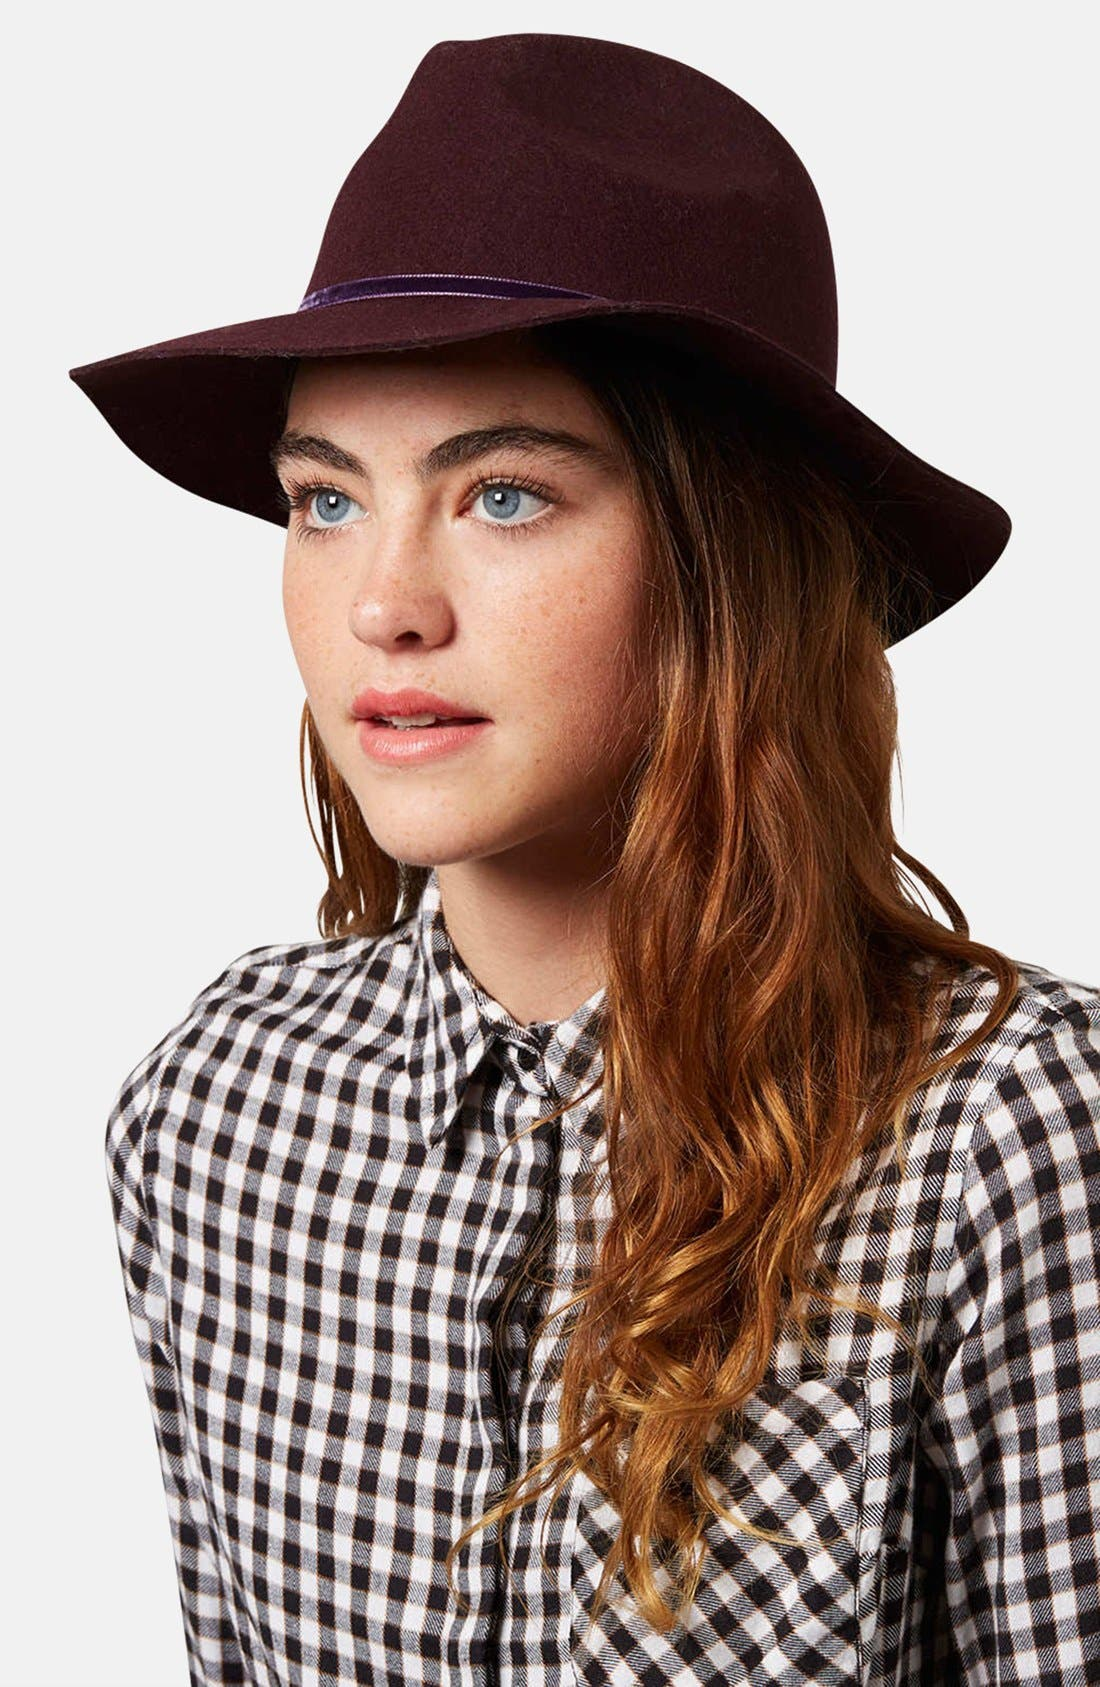 TOPSHOP, 'New Clean Edge' Wool Fedora, Main thumbnail 1, color, 930